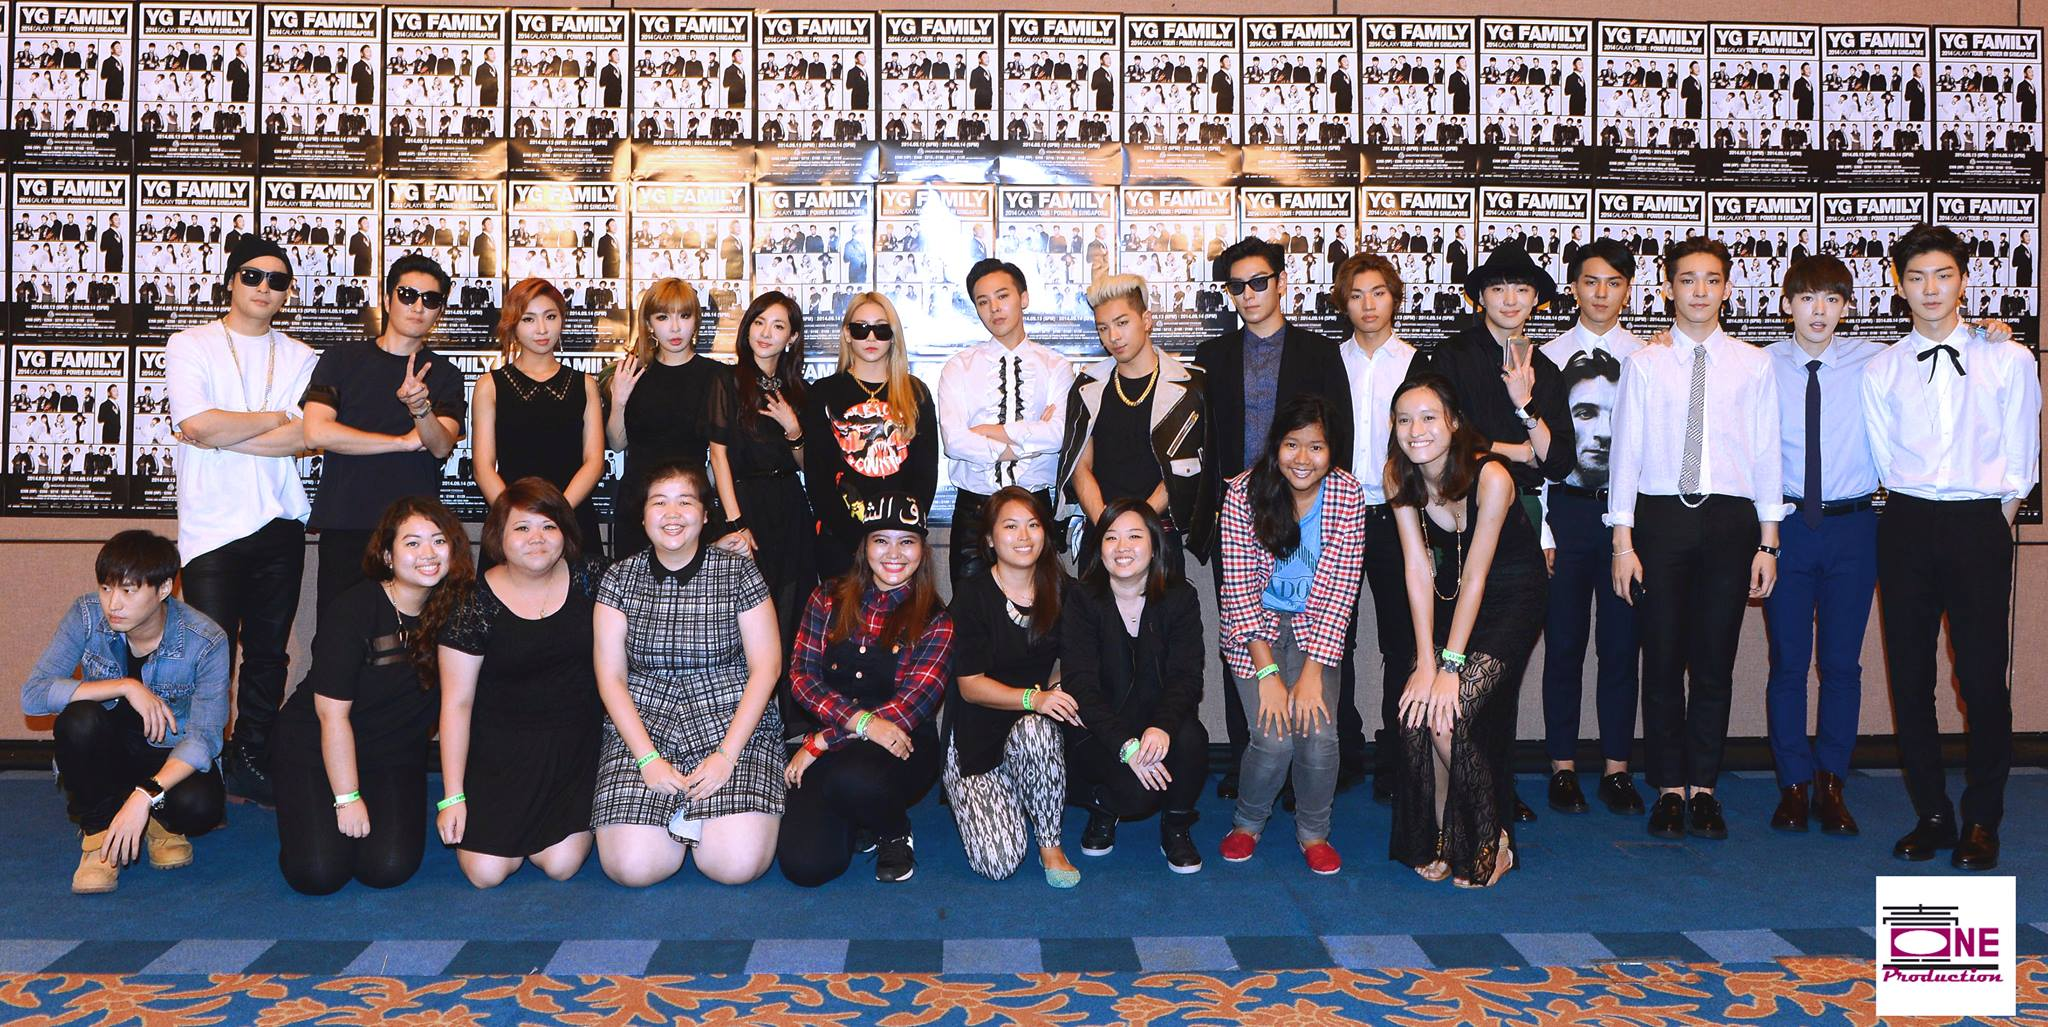 Photos: YG Family at the Meet and Greet for YG Family 2014 ...